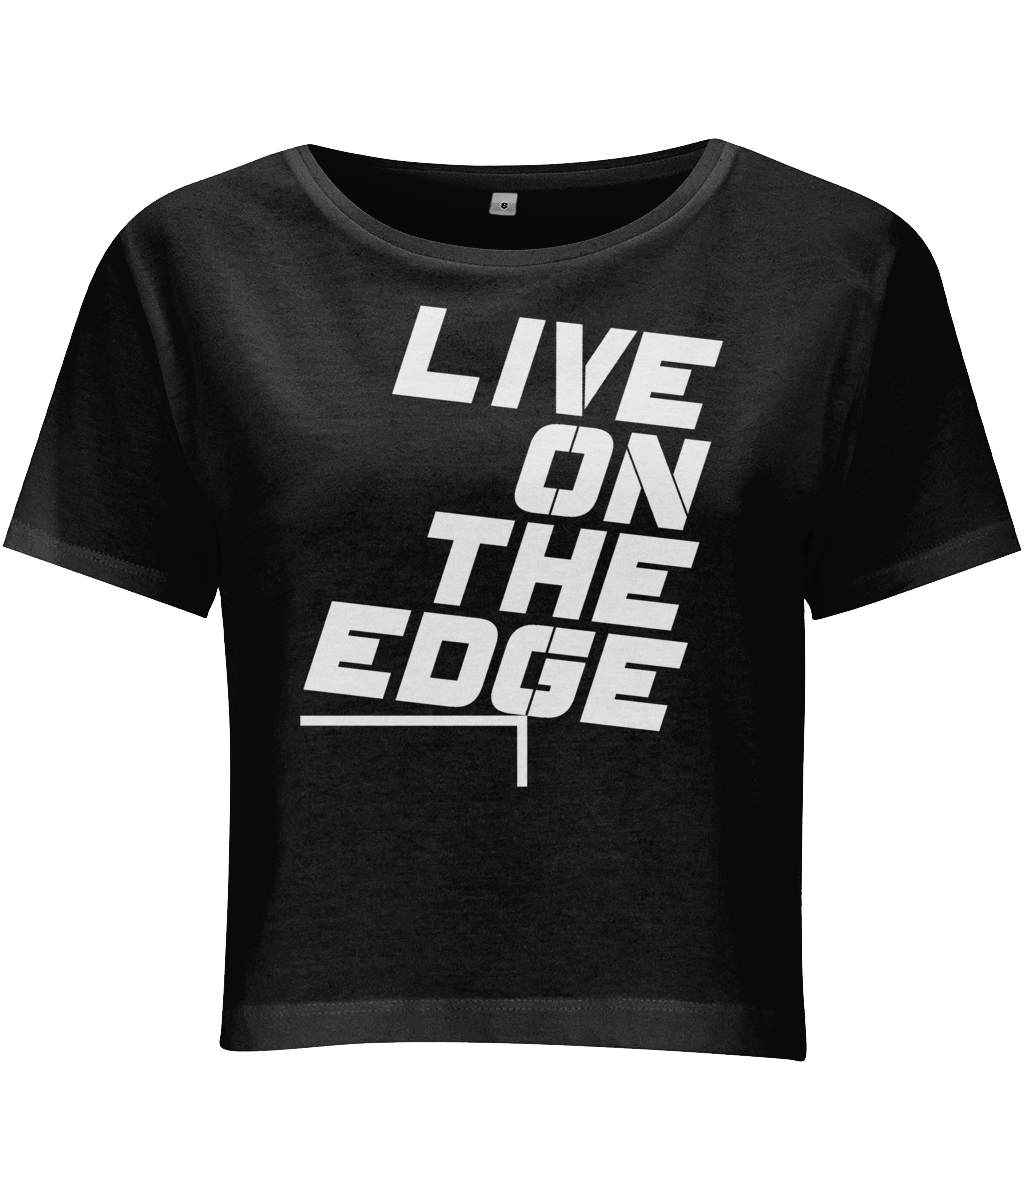 Live On The Edge - women's crop top